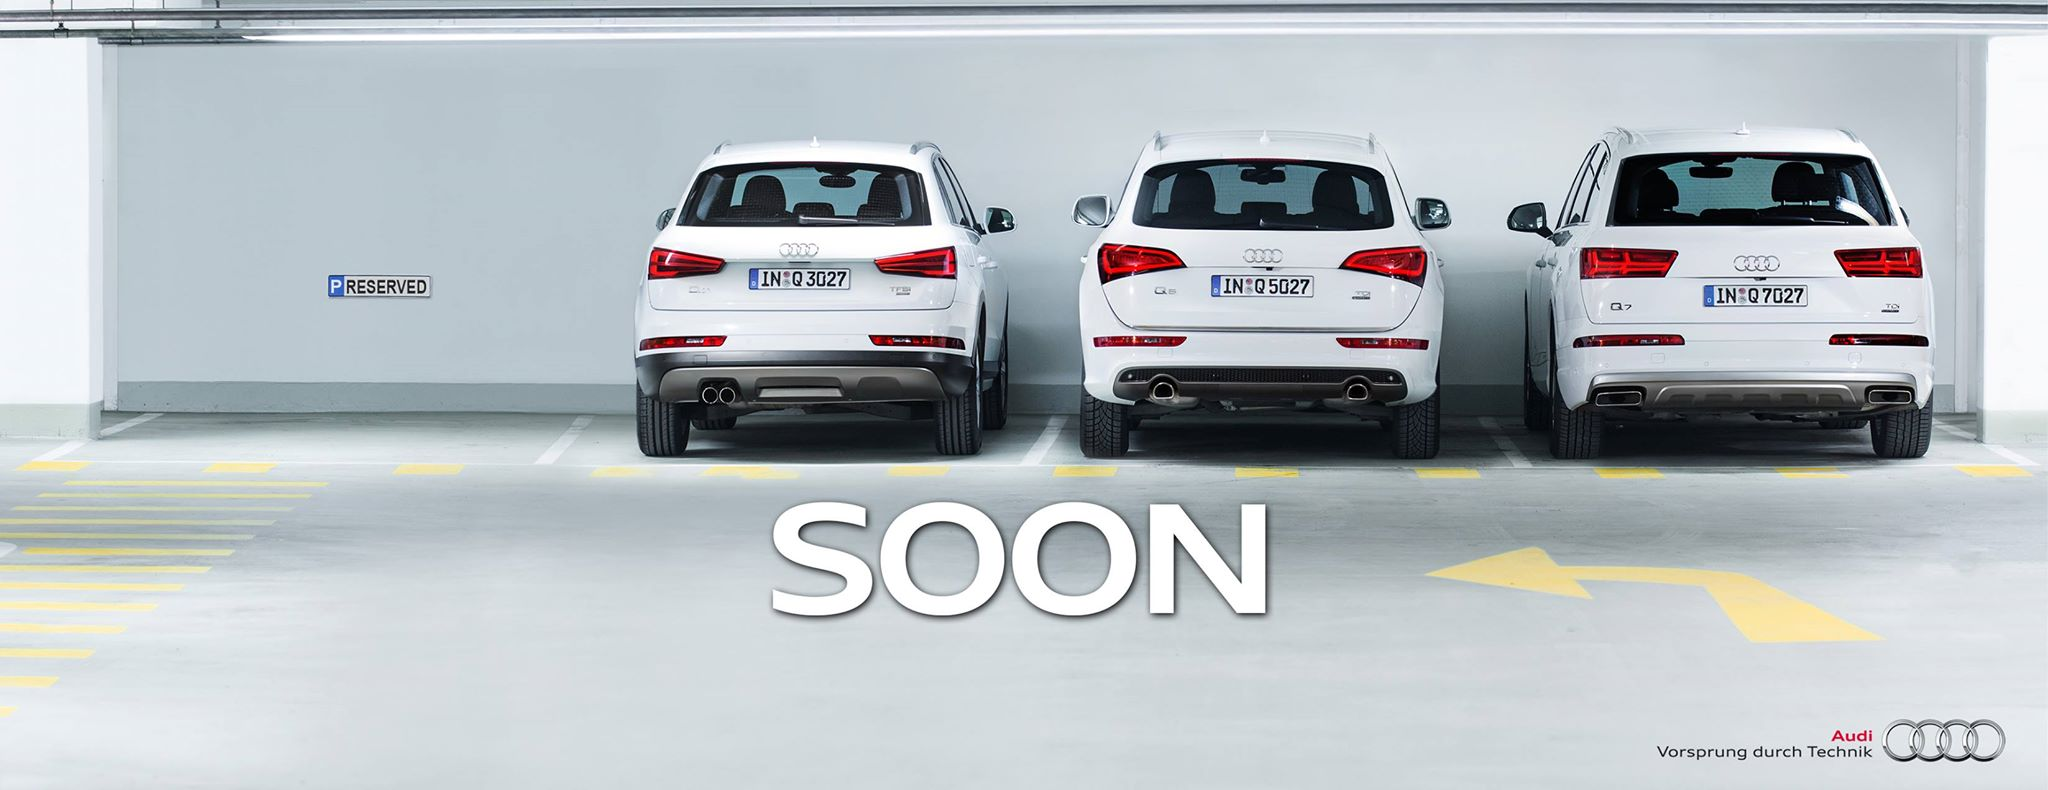 audi-q2-teaser-is-a-family-photo-hints-at-geneva-motor-show-debut-104498_1